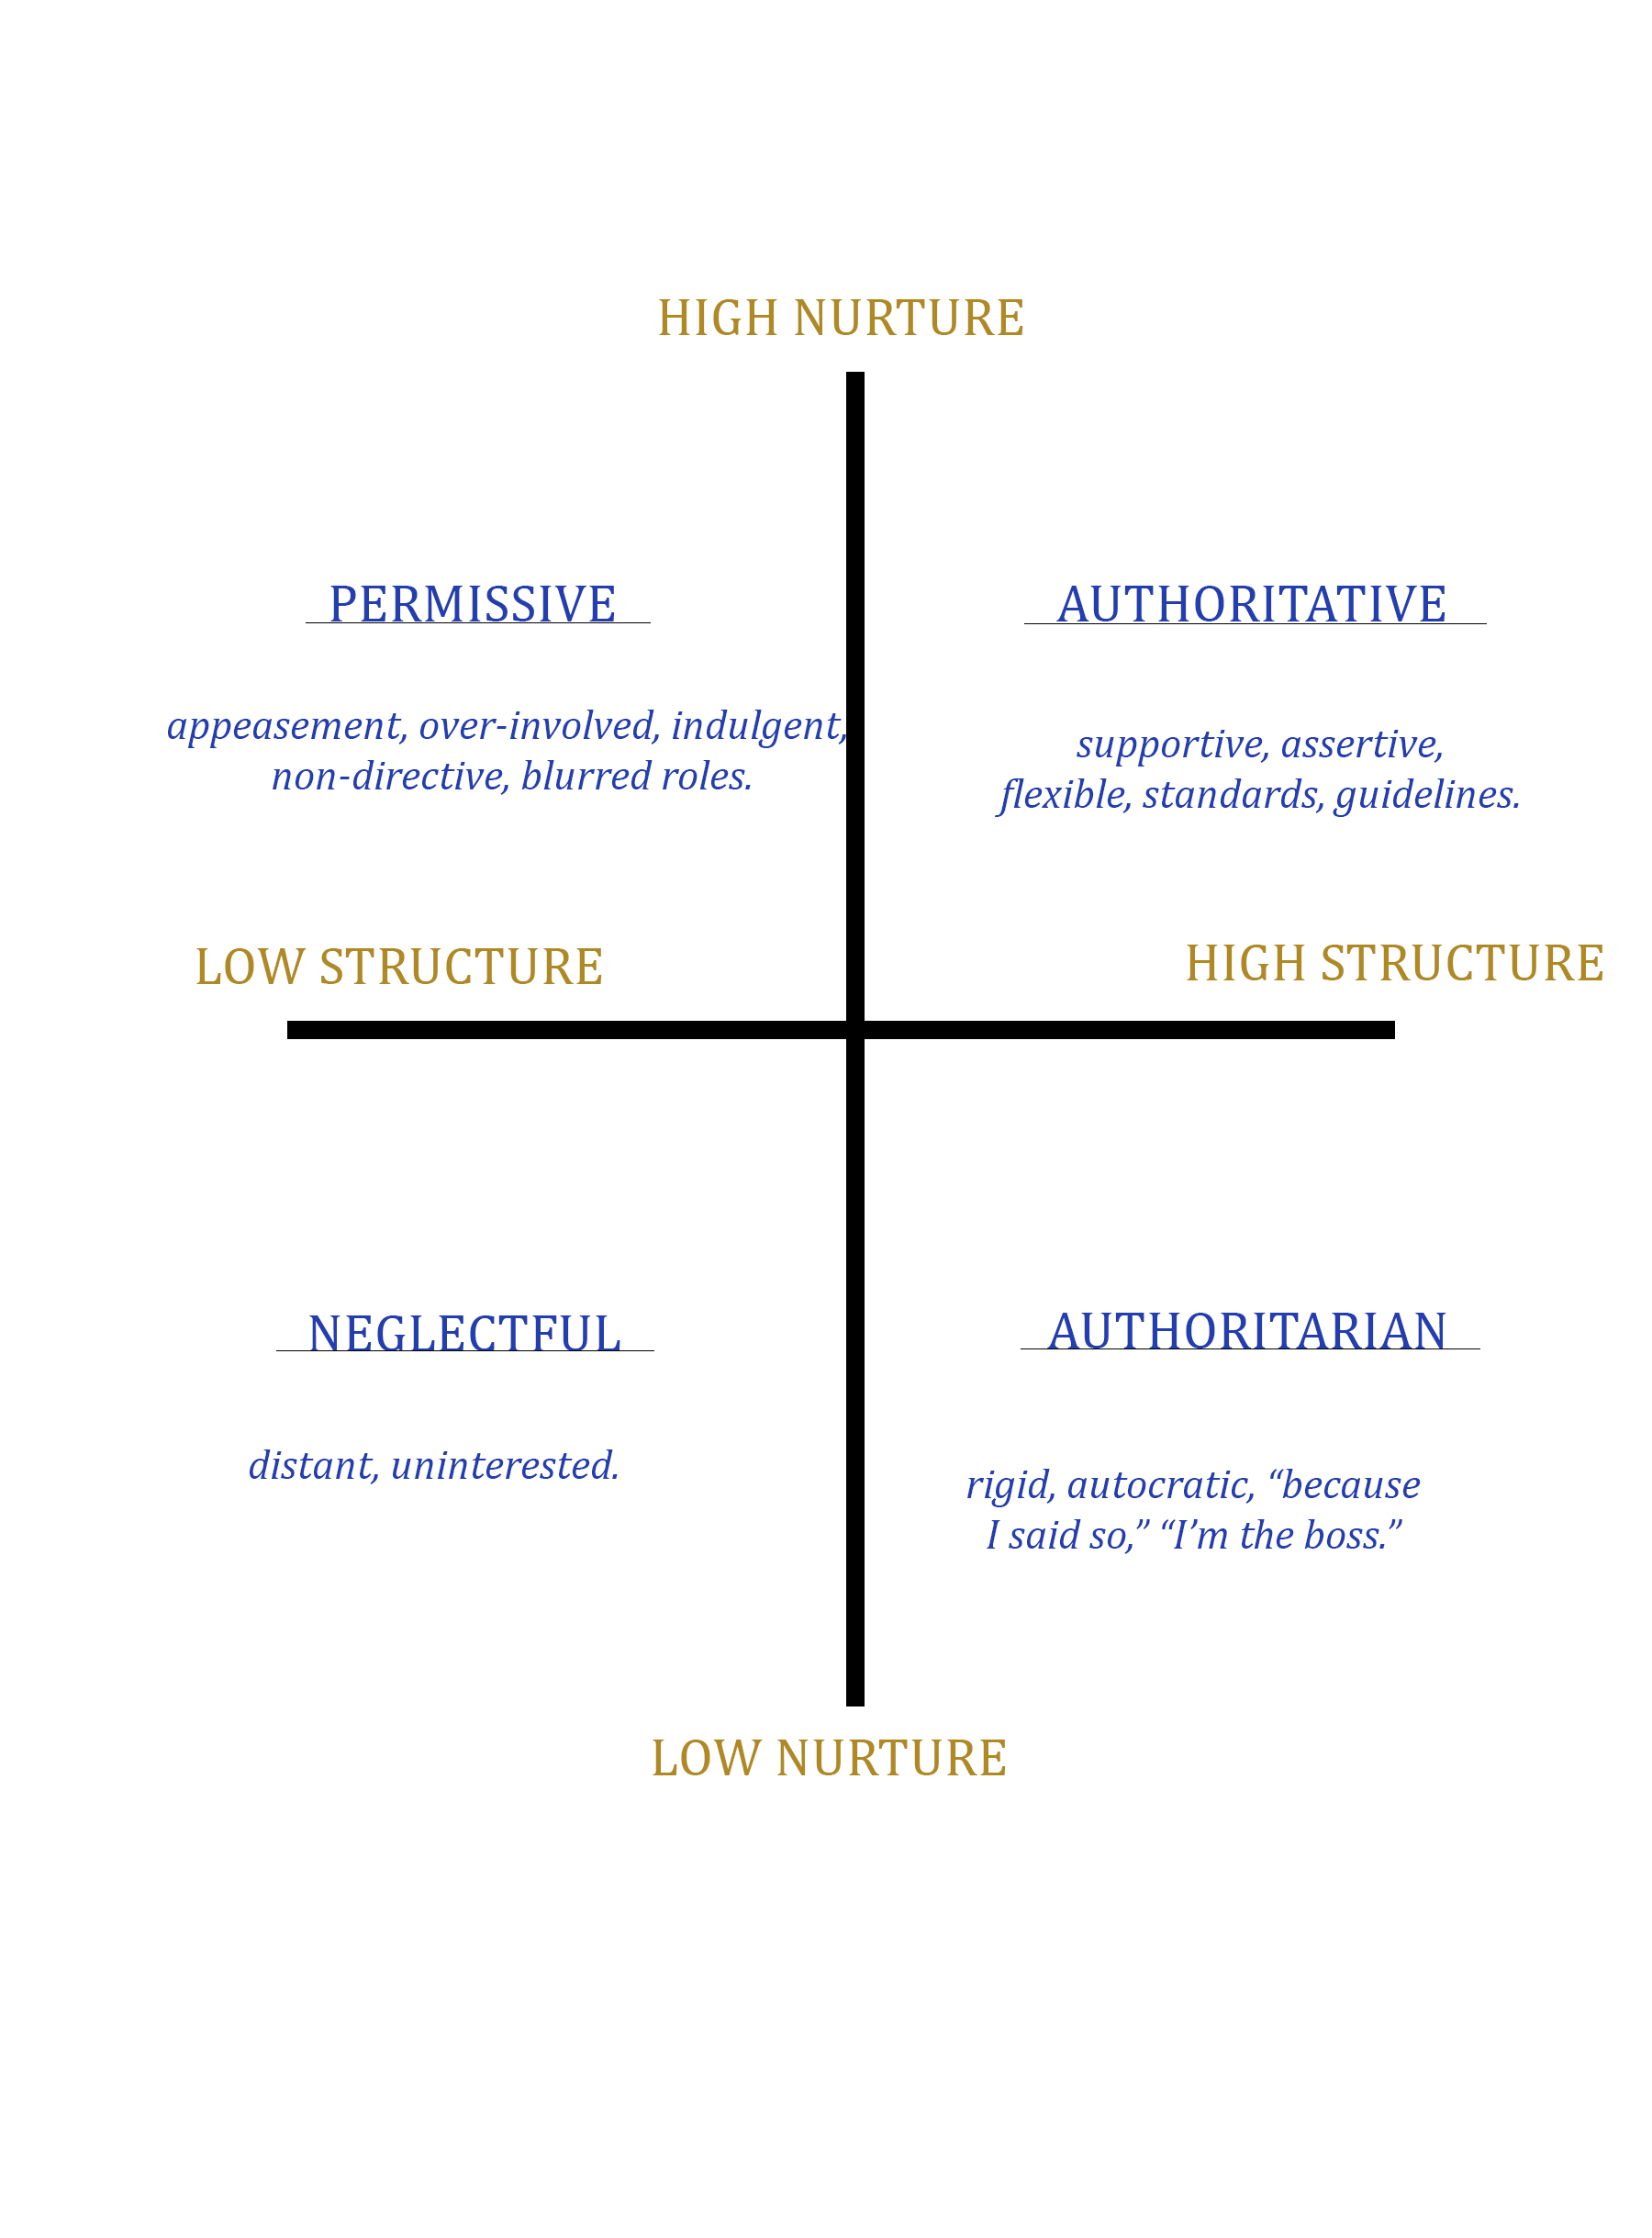 diana baumrind parenting styles essays Diana blumberg baumrind (born august 23, 1927) is a clinical and developmental psychologist known for her research on parenting styles and for her critique of the use.